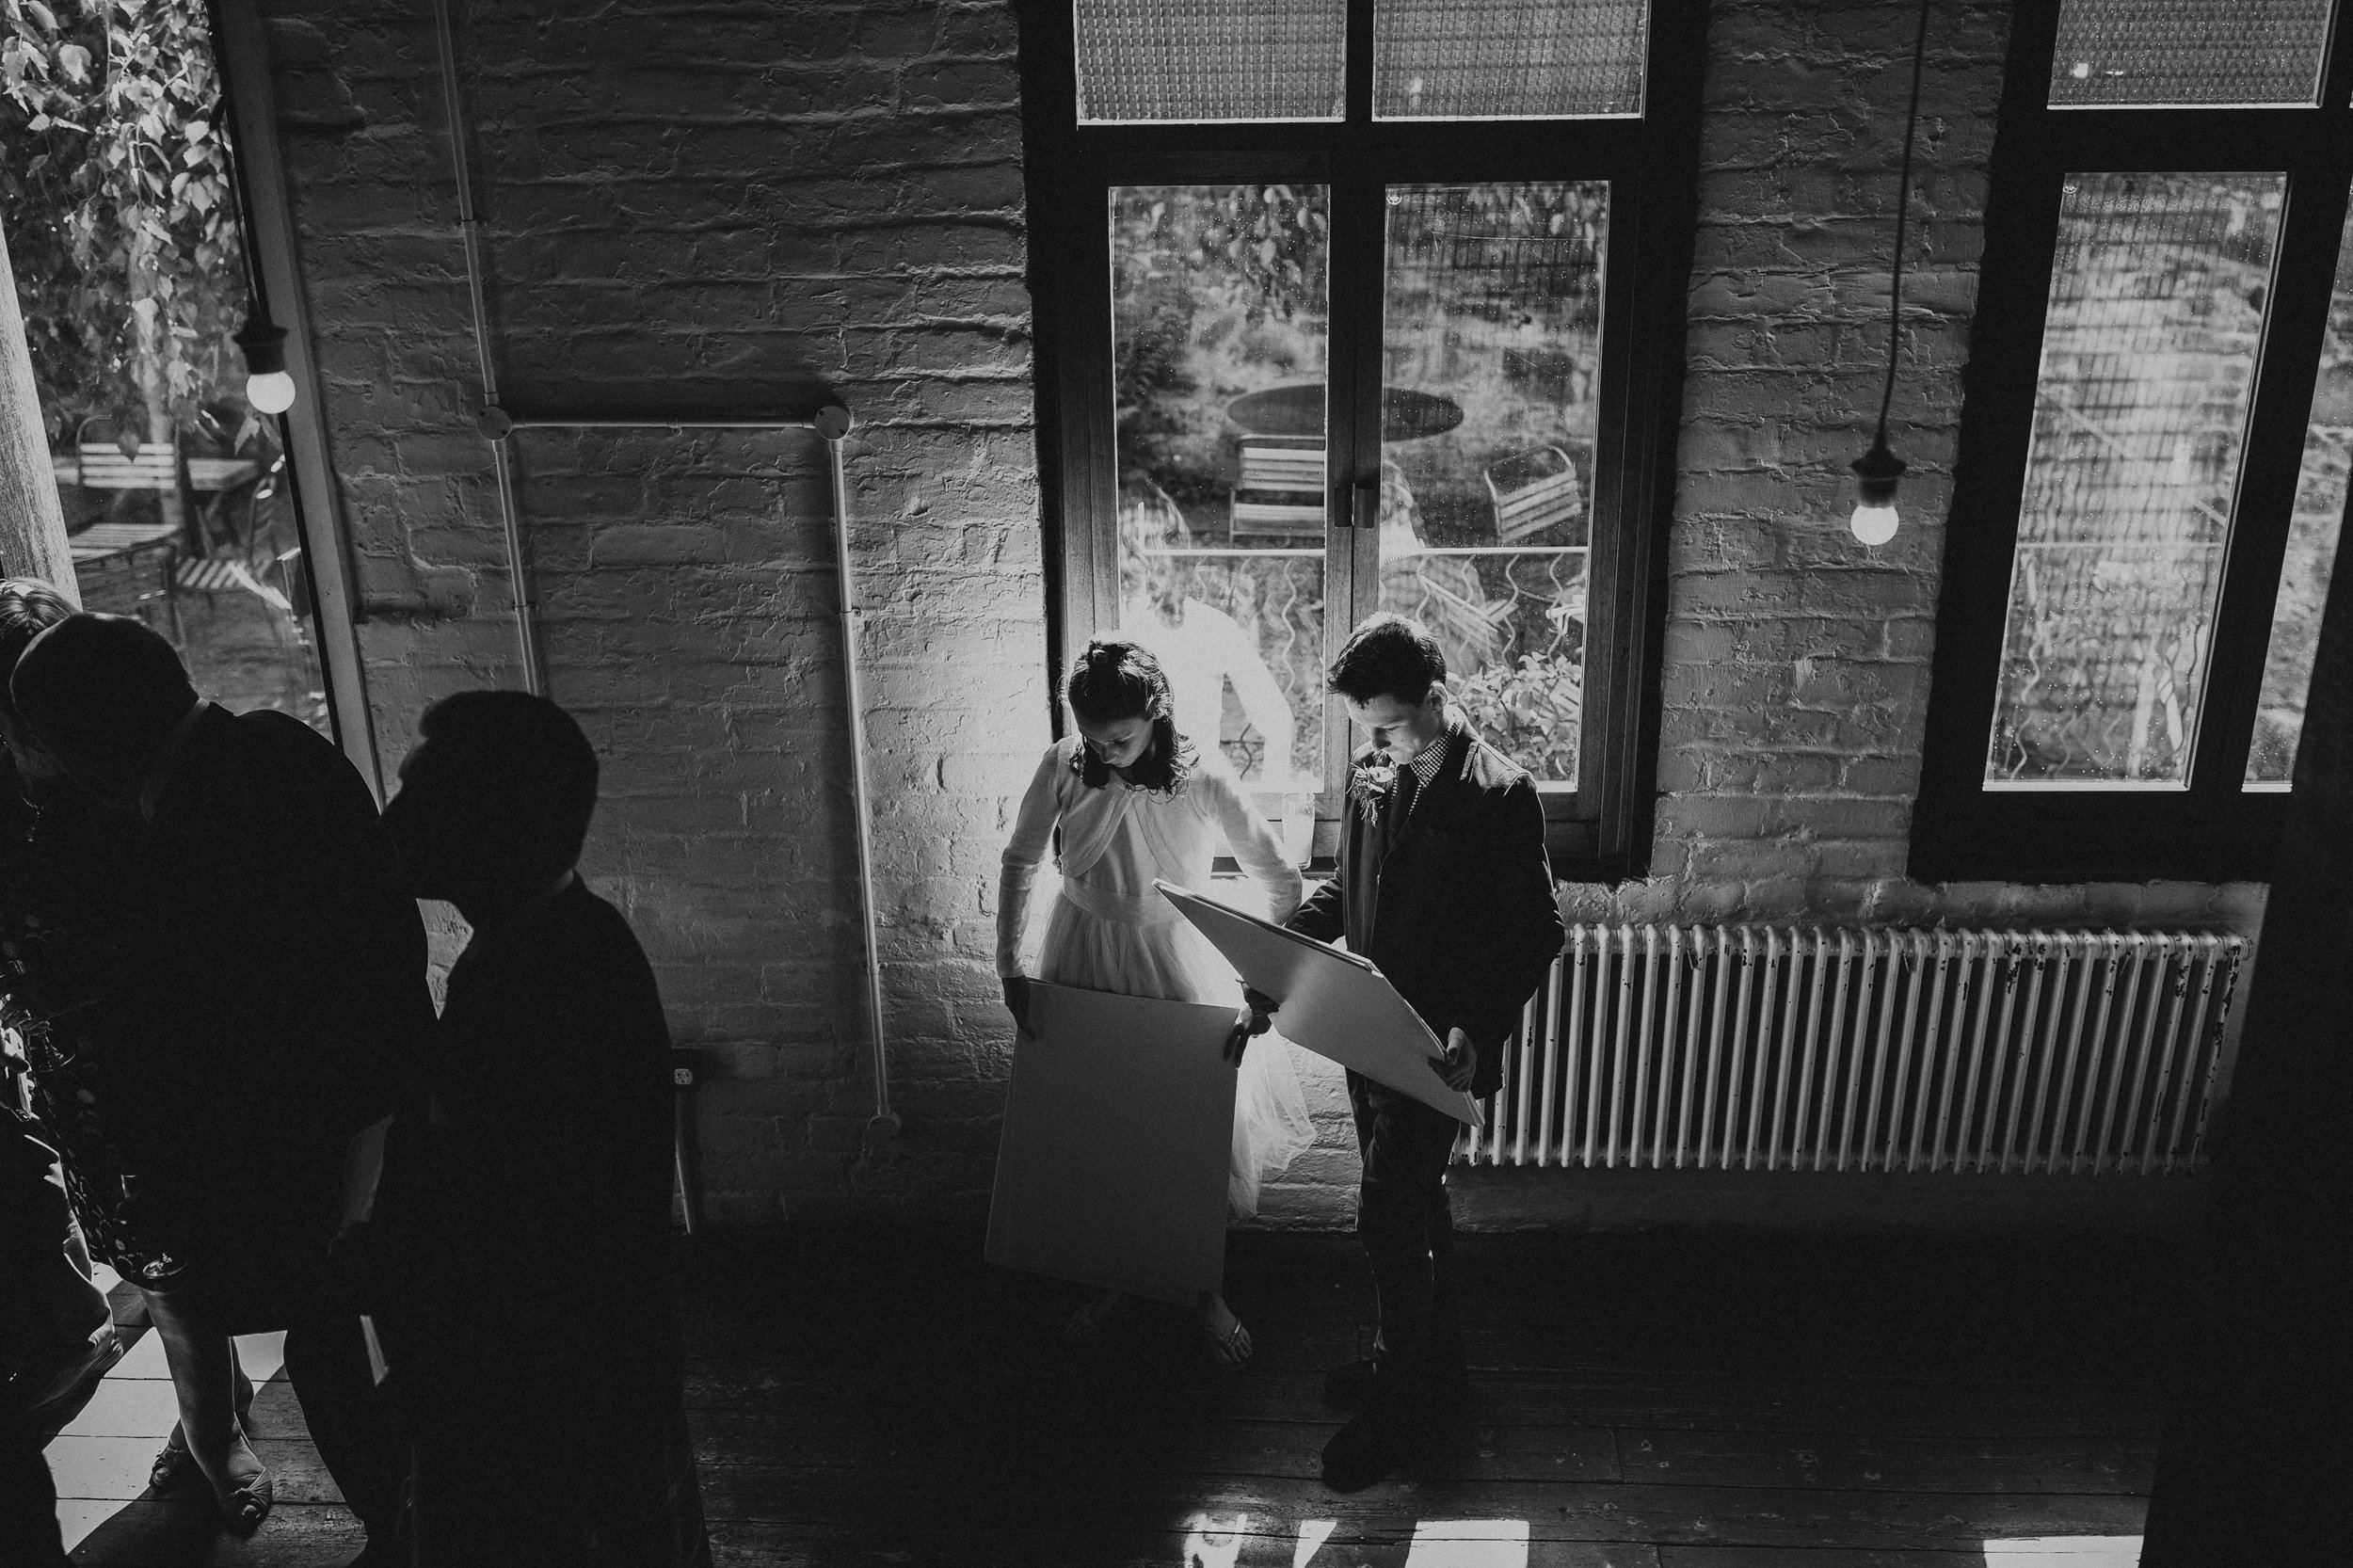 TIMBERYARD_EDINBURGH_WEDDING_PJ_PHILLIPS_PHOTOGRAPHY_144.jpg